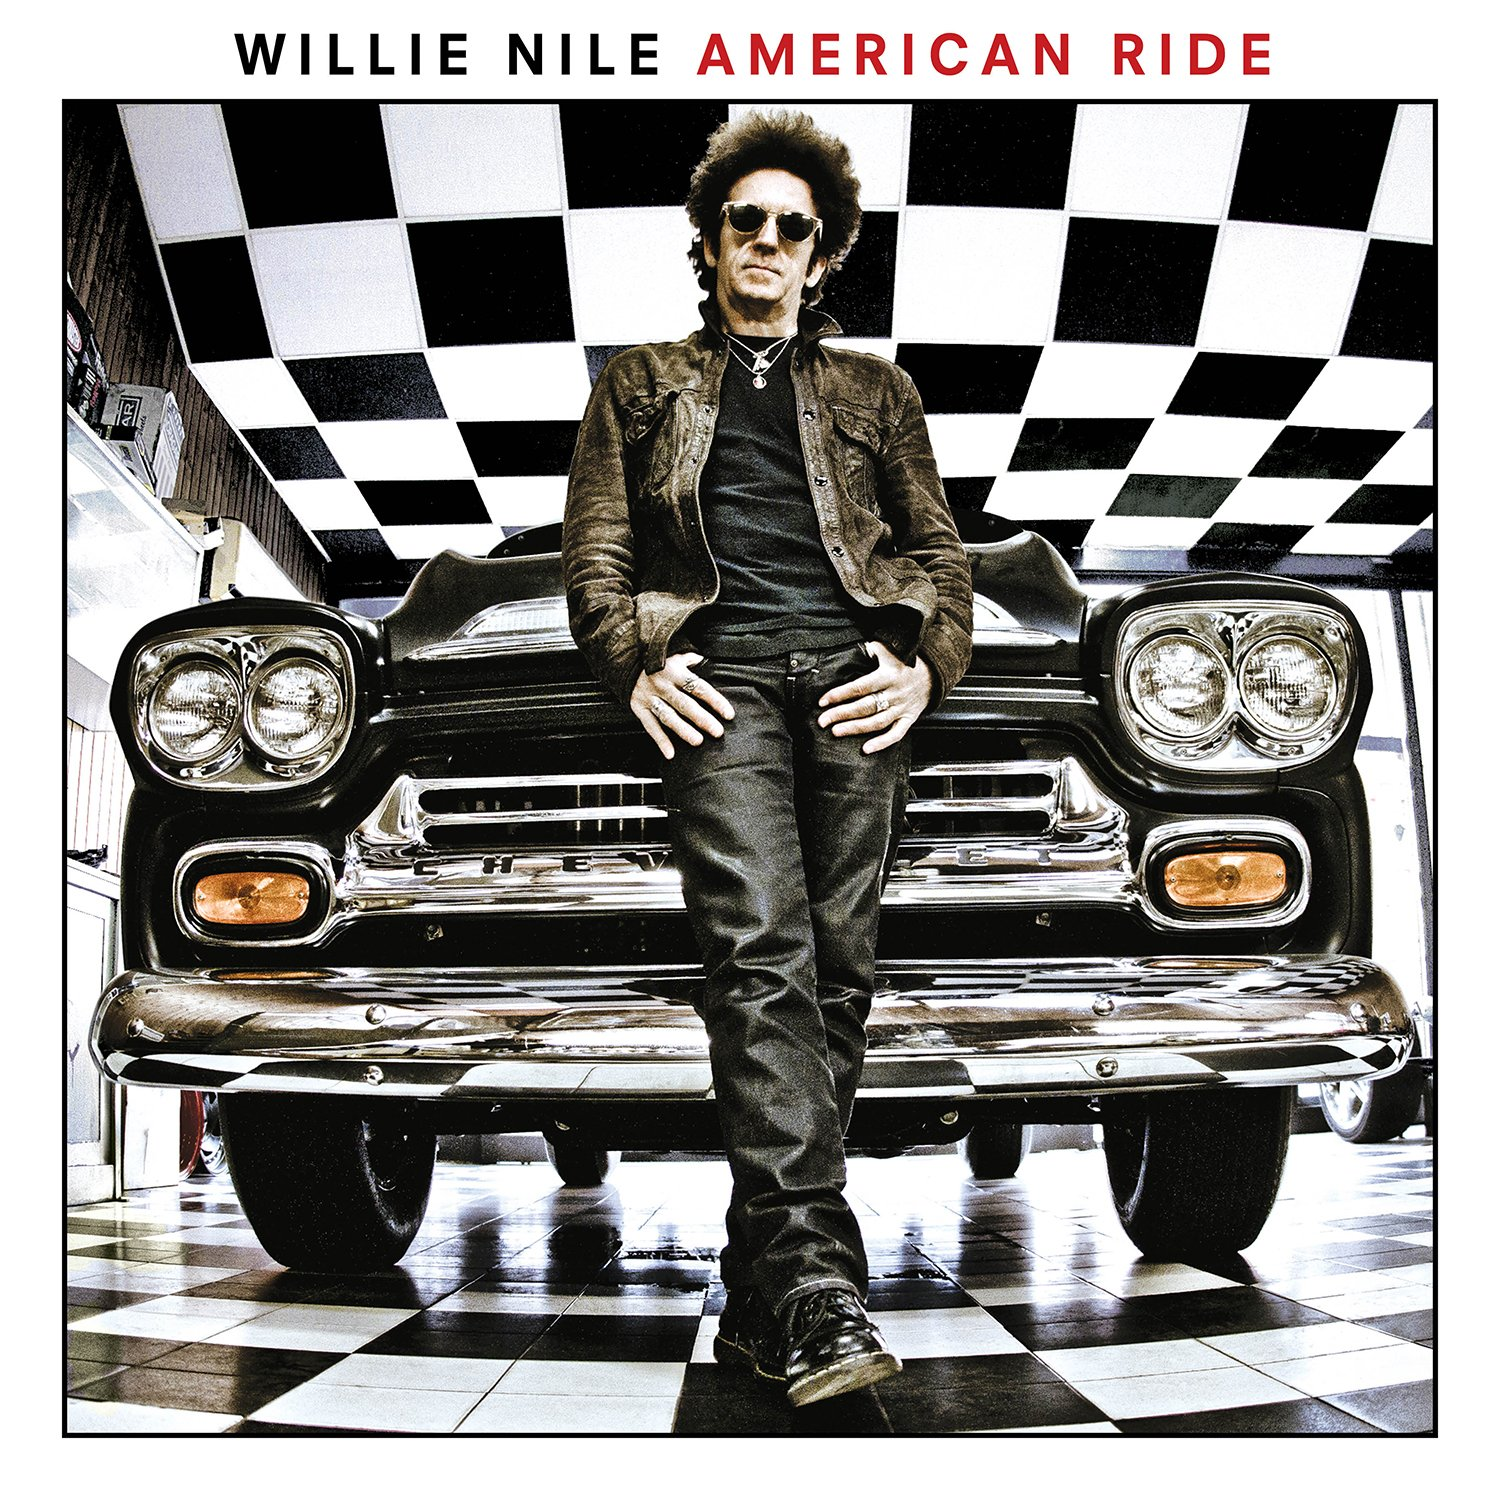 Willie Nile, American Ride